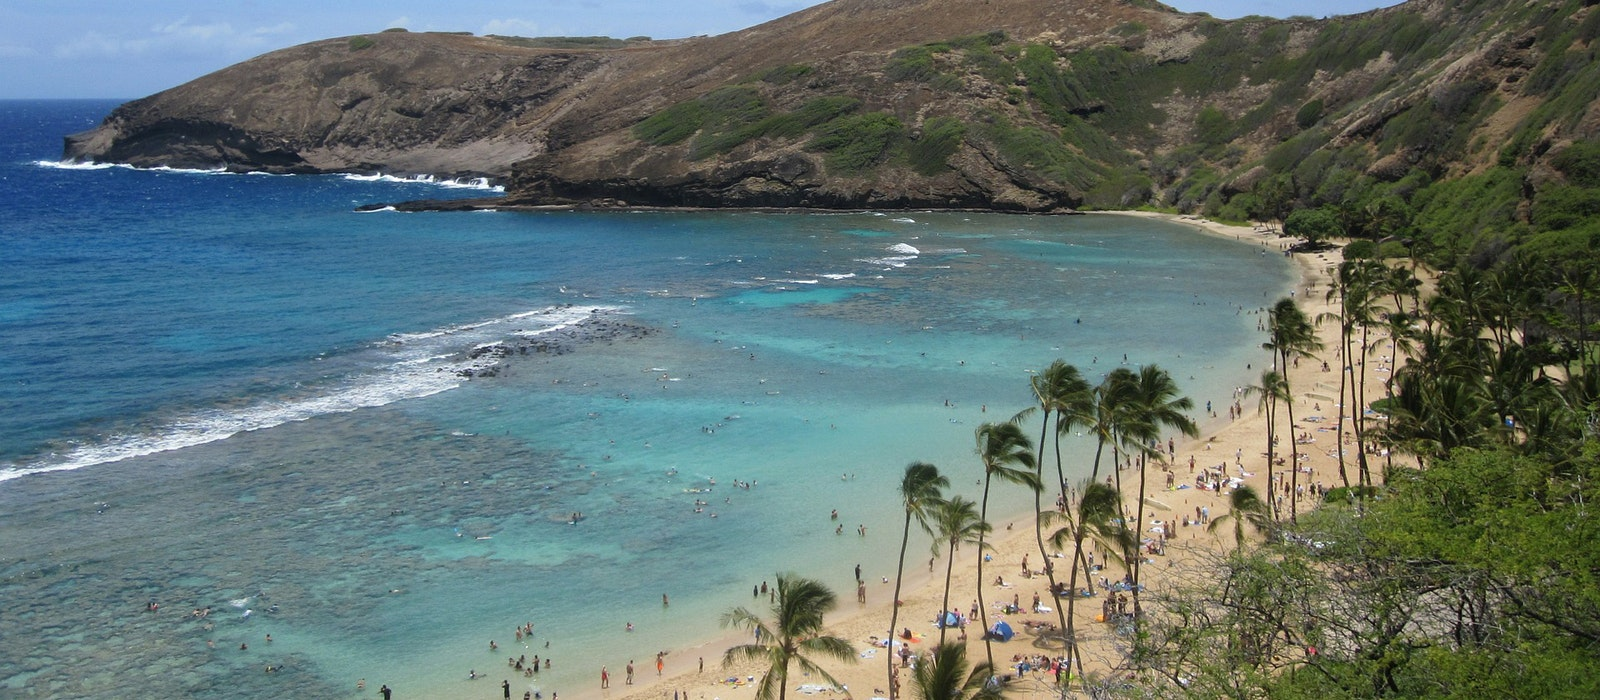 Once the exclusive playground of Hawaiian royalty, Oahu's Hanauma Bay became a protected marine conservation area and underwater park in 1967.